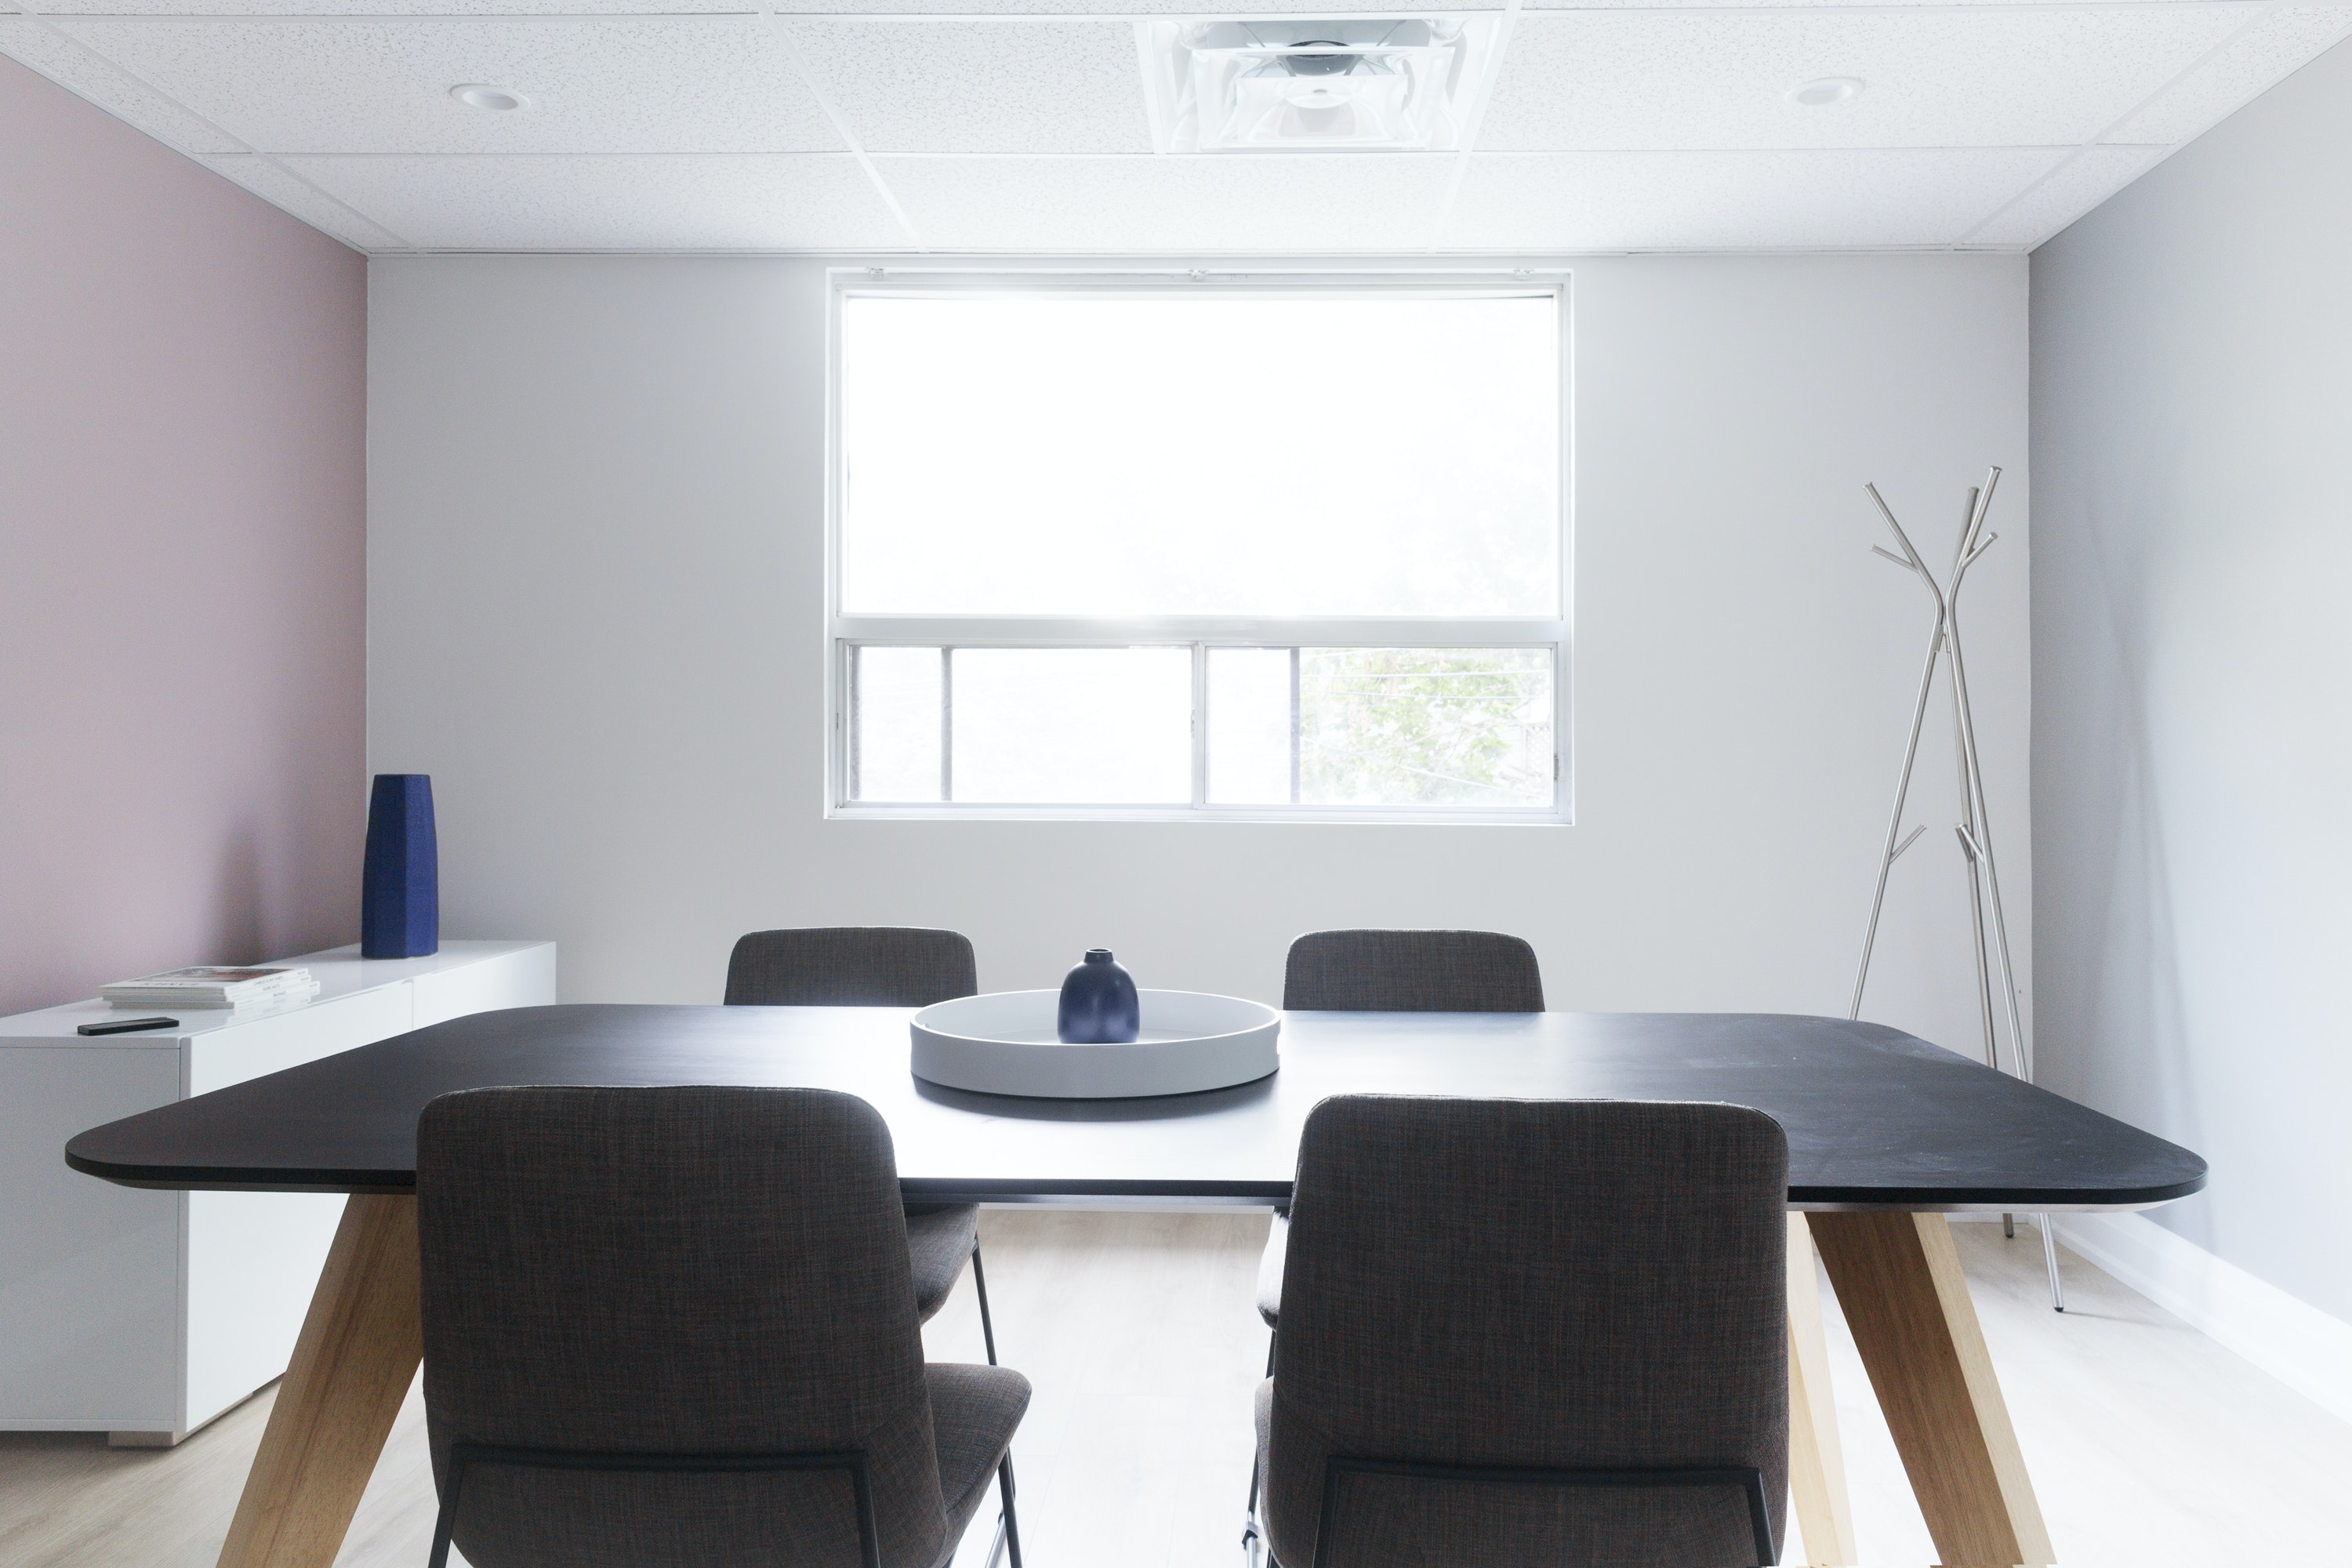 interview space at 925 Queen Street W. ,Toronto